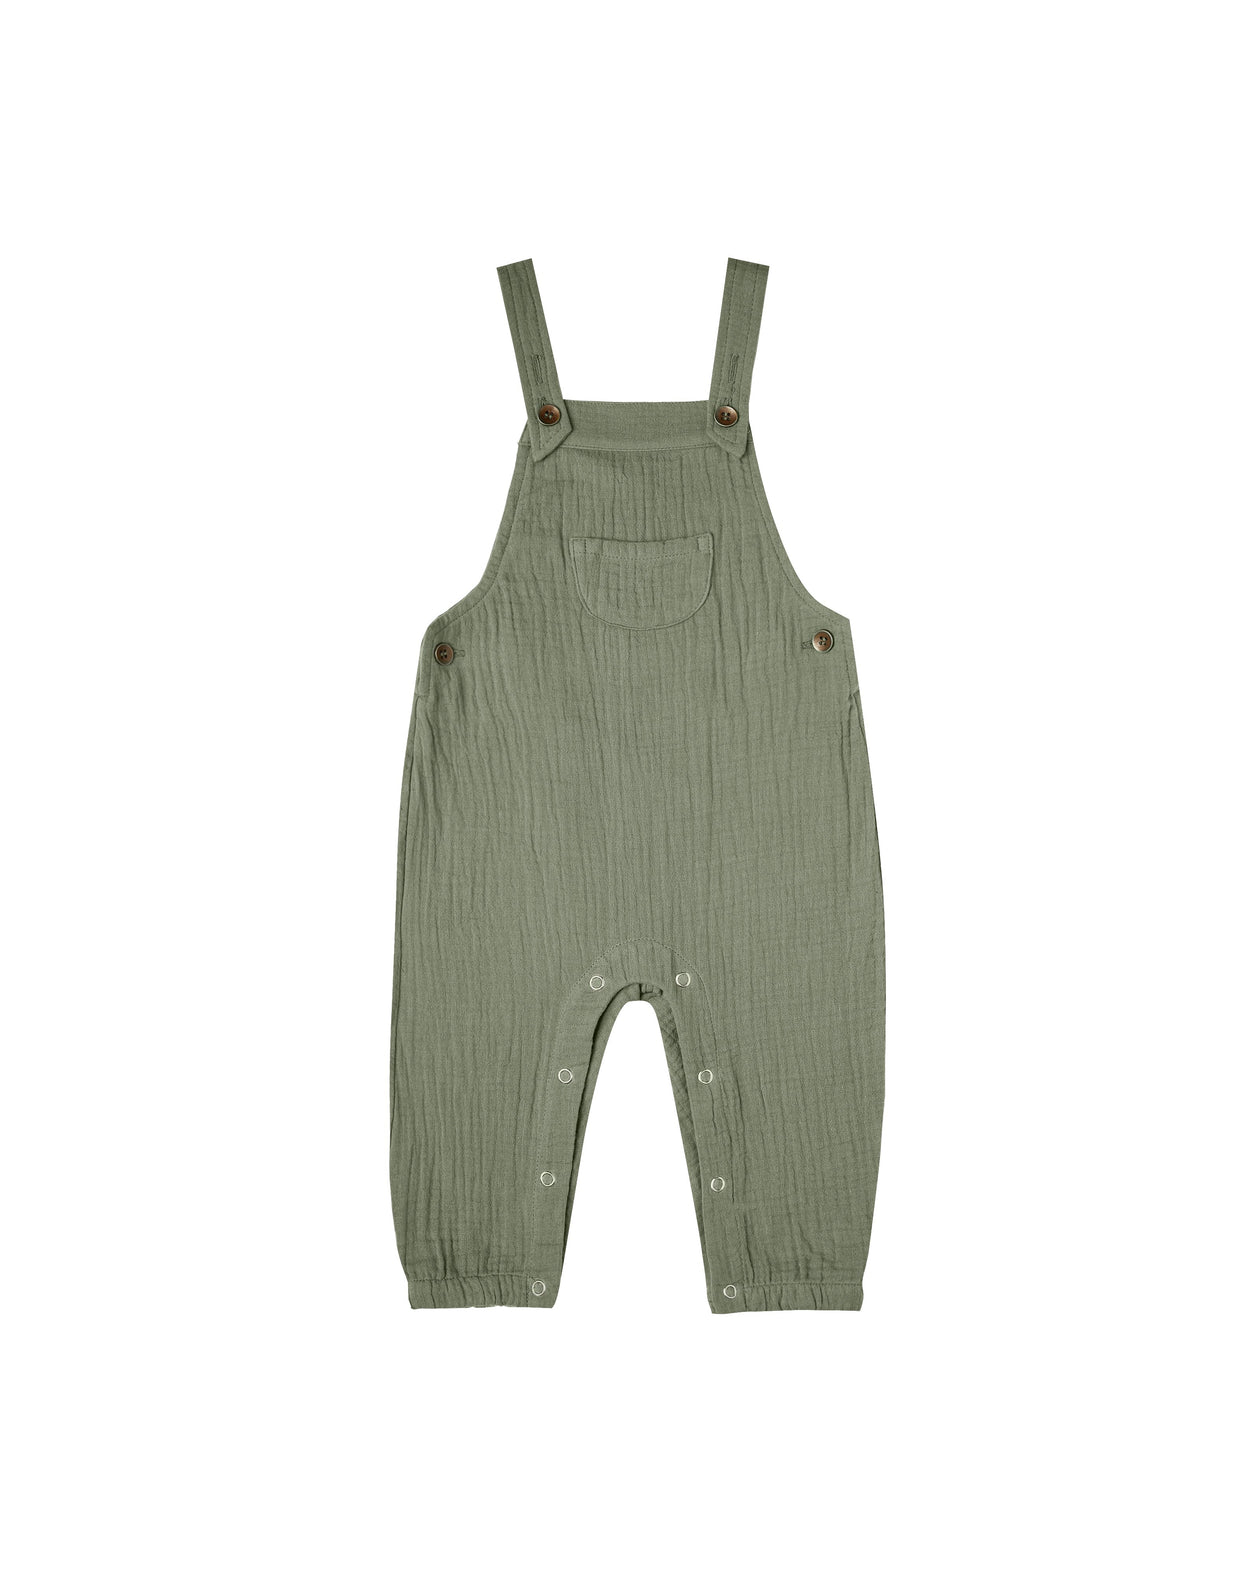 The Rylee & Cru Baby Overalls Fern